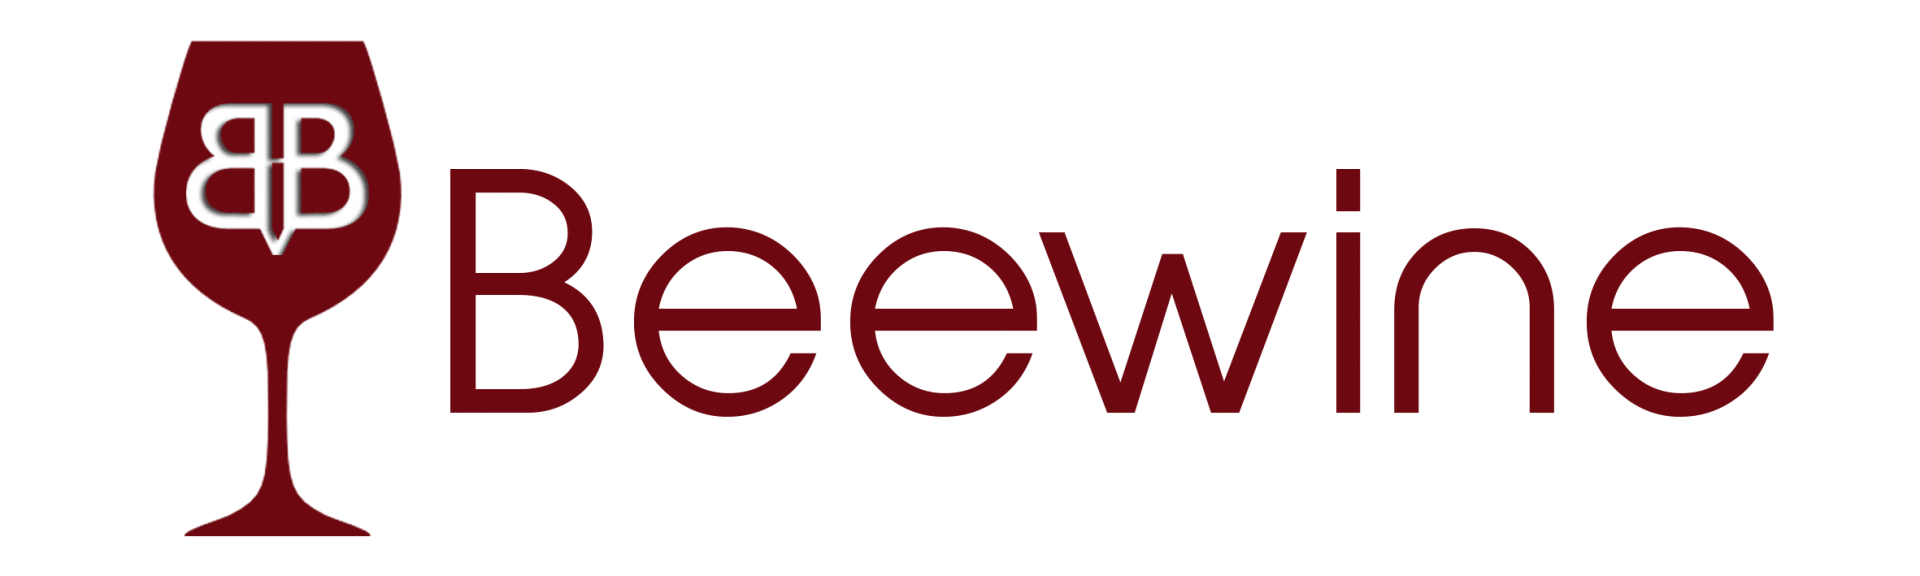 Beewine - agence marketing et communication